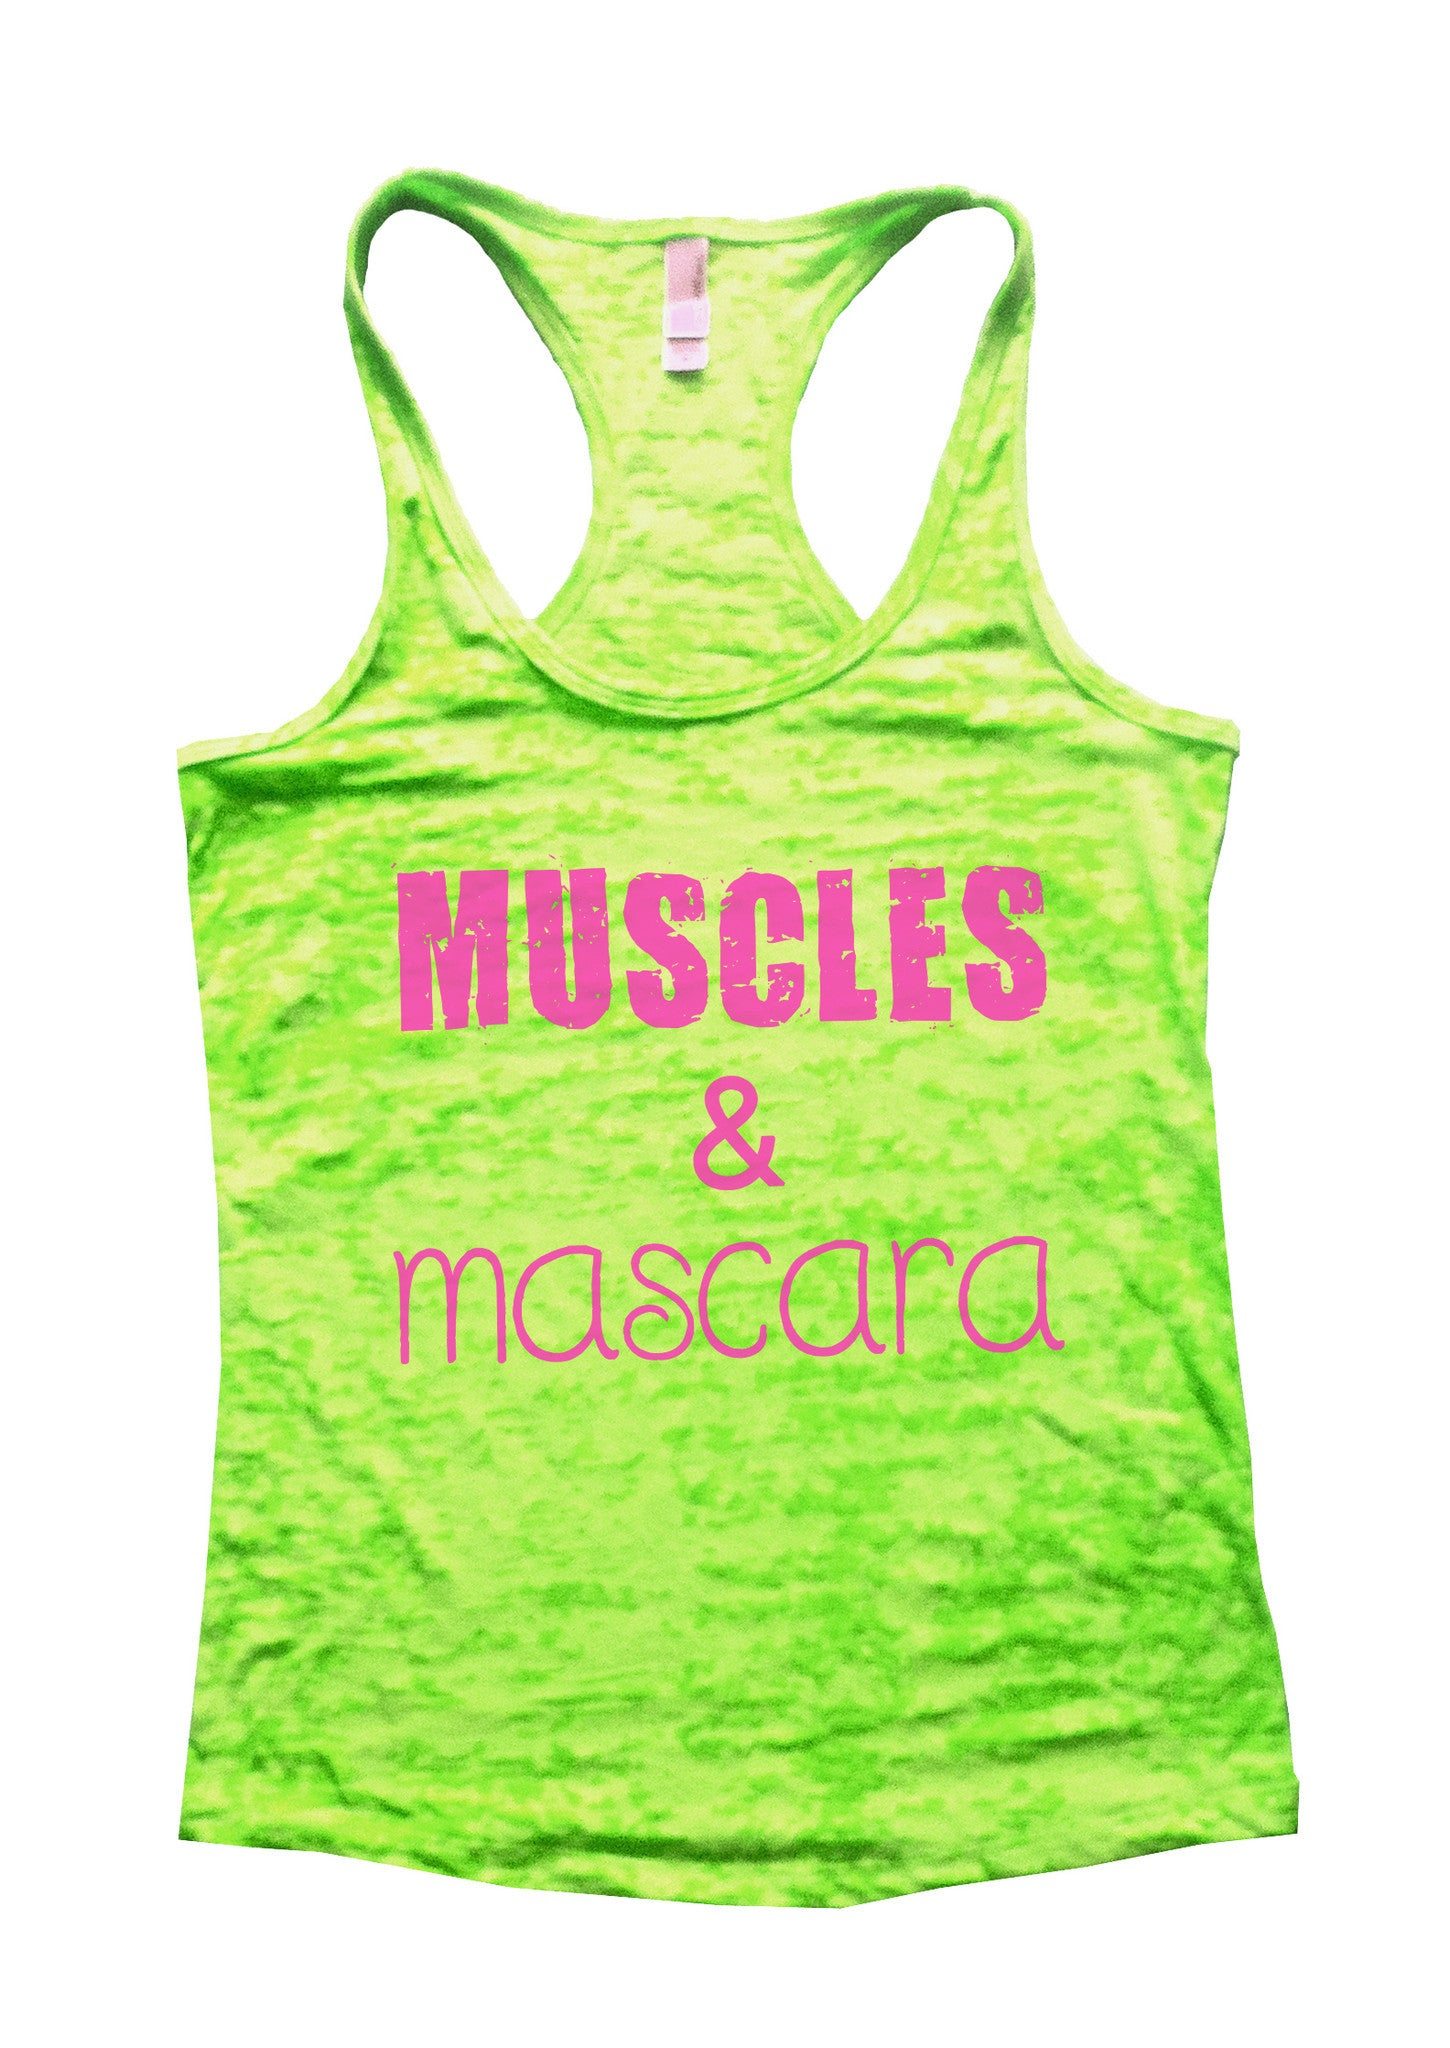 Muscles & Mascara Burnout Tank Top By BurnoutTankTops.com - 522 - Funny Shirts Tank Tops Burnouts and Triblends  - 1